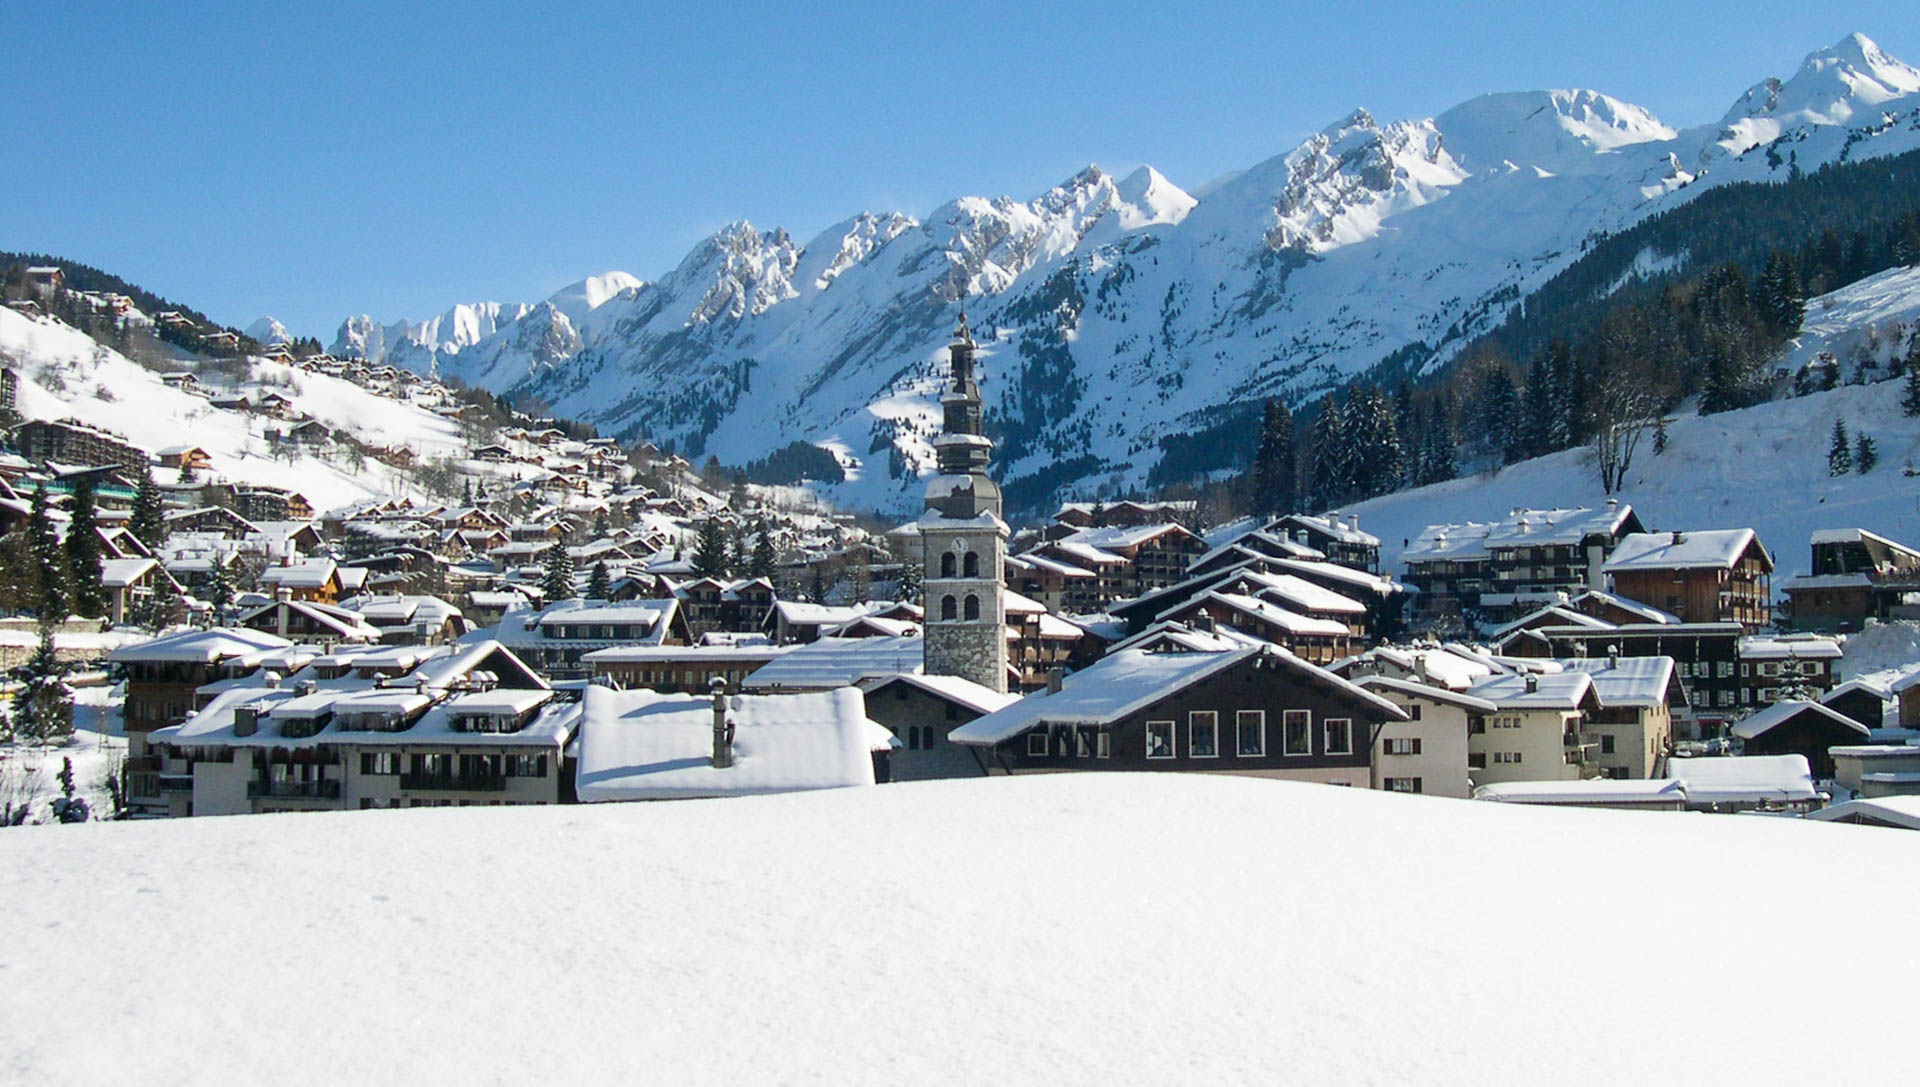 A proud church spire juts up amongst snow-covered roofs in the ski resort of La Clusaz